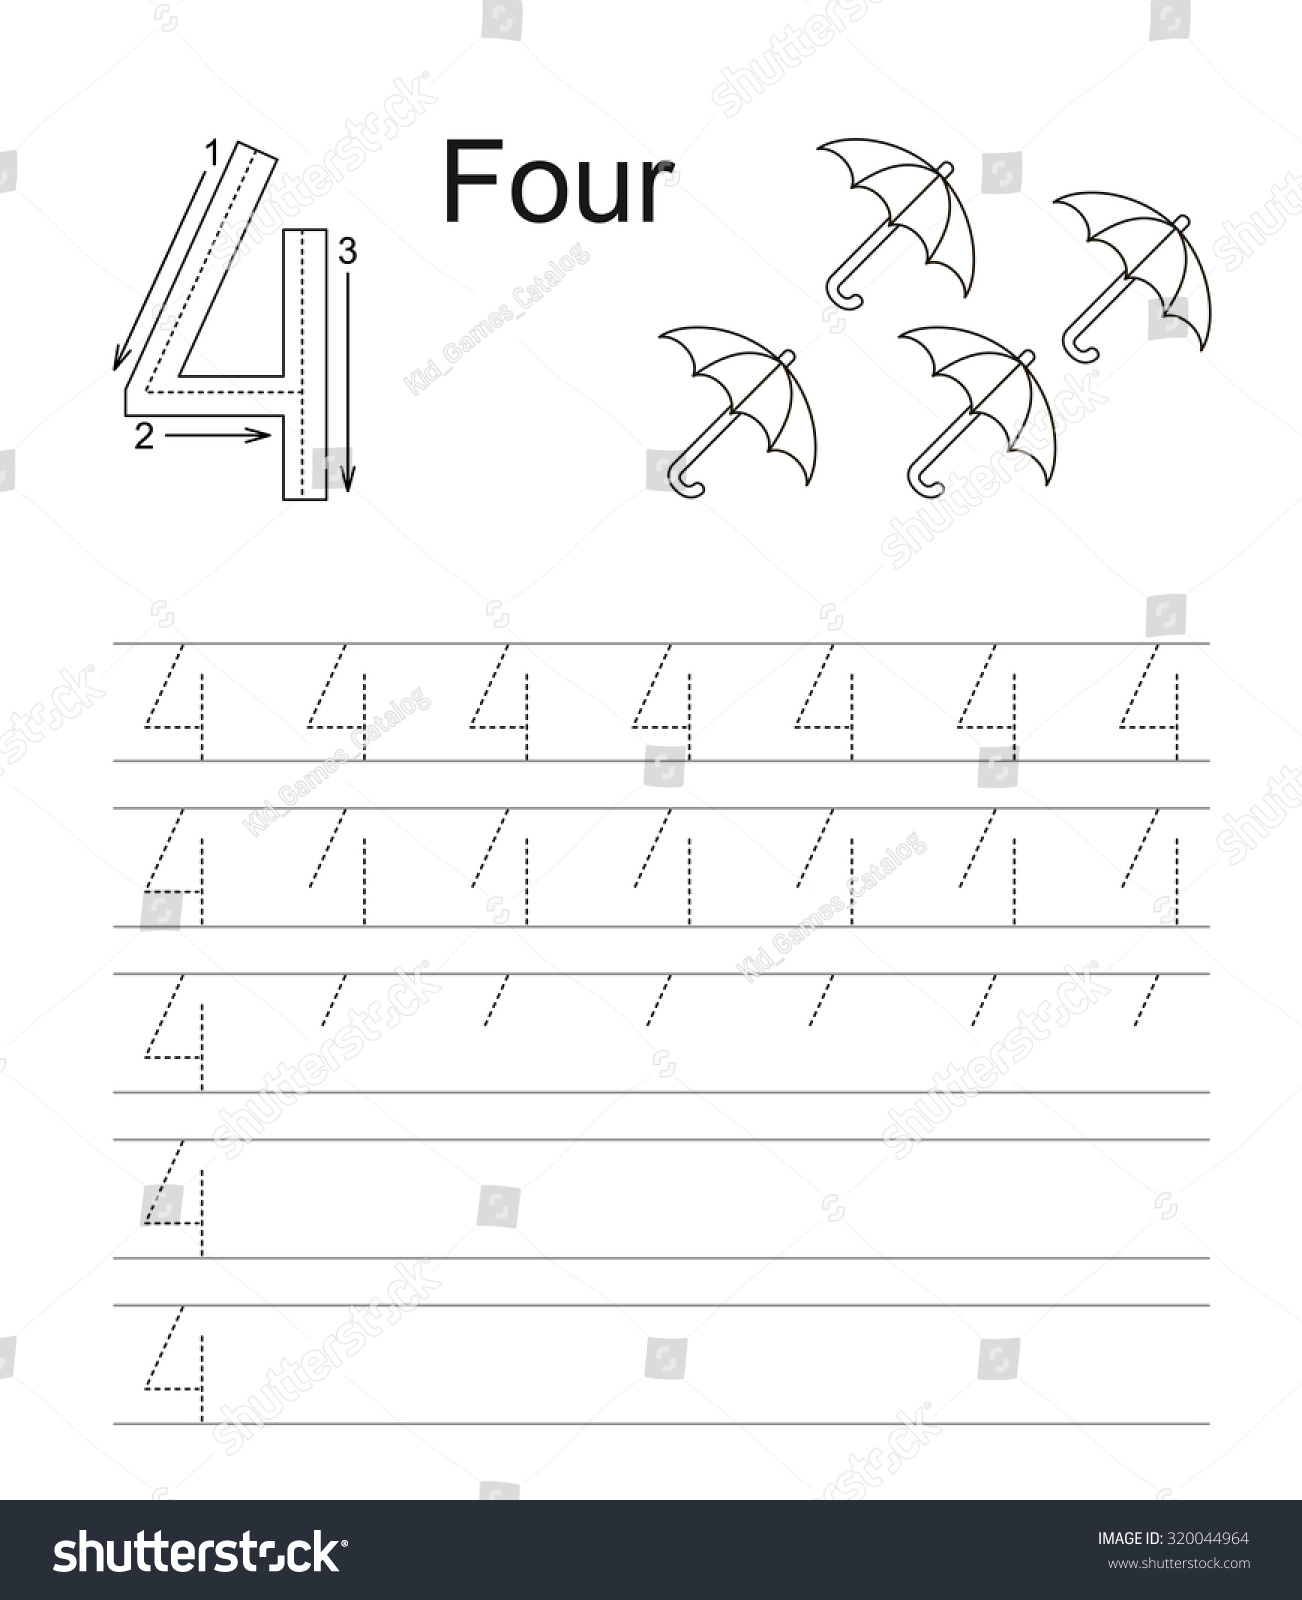 vector exercise illustrated alphabet learn handwriting tracing worksheet for figure 4 four. Black Bedroom Furniture Sets. Home Design Ideas